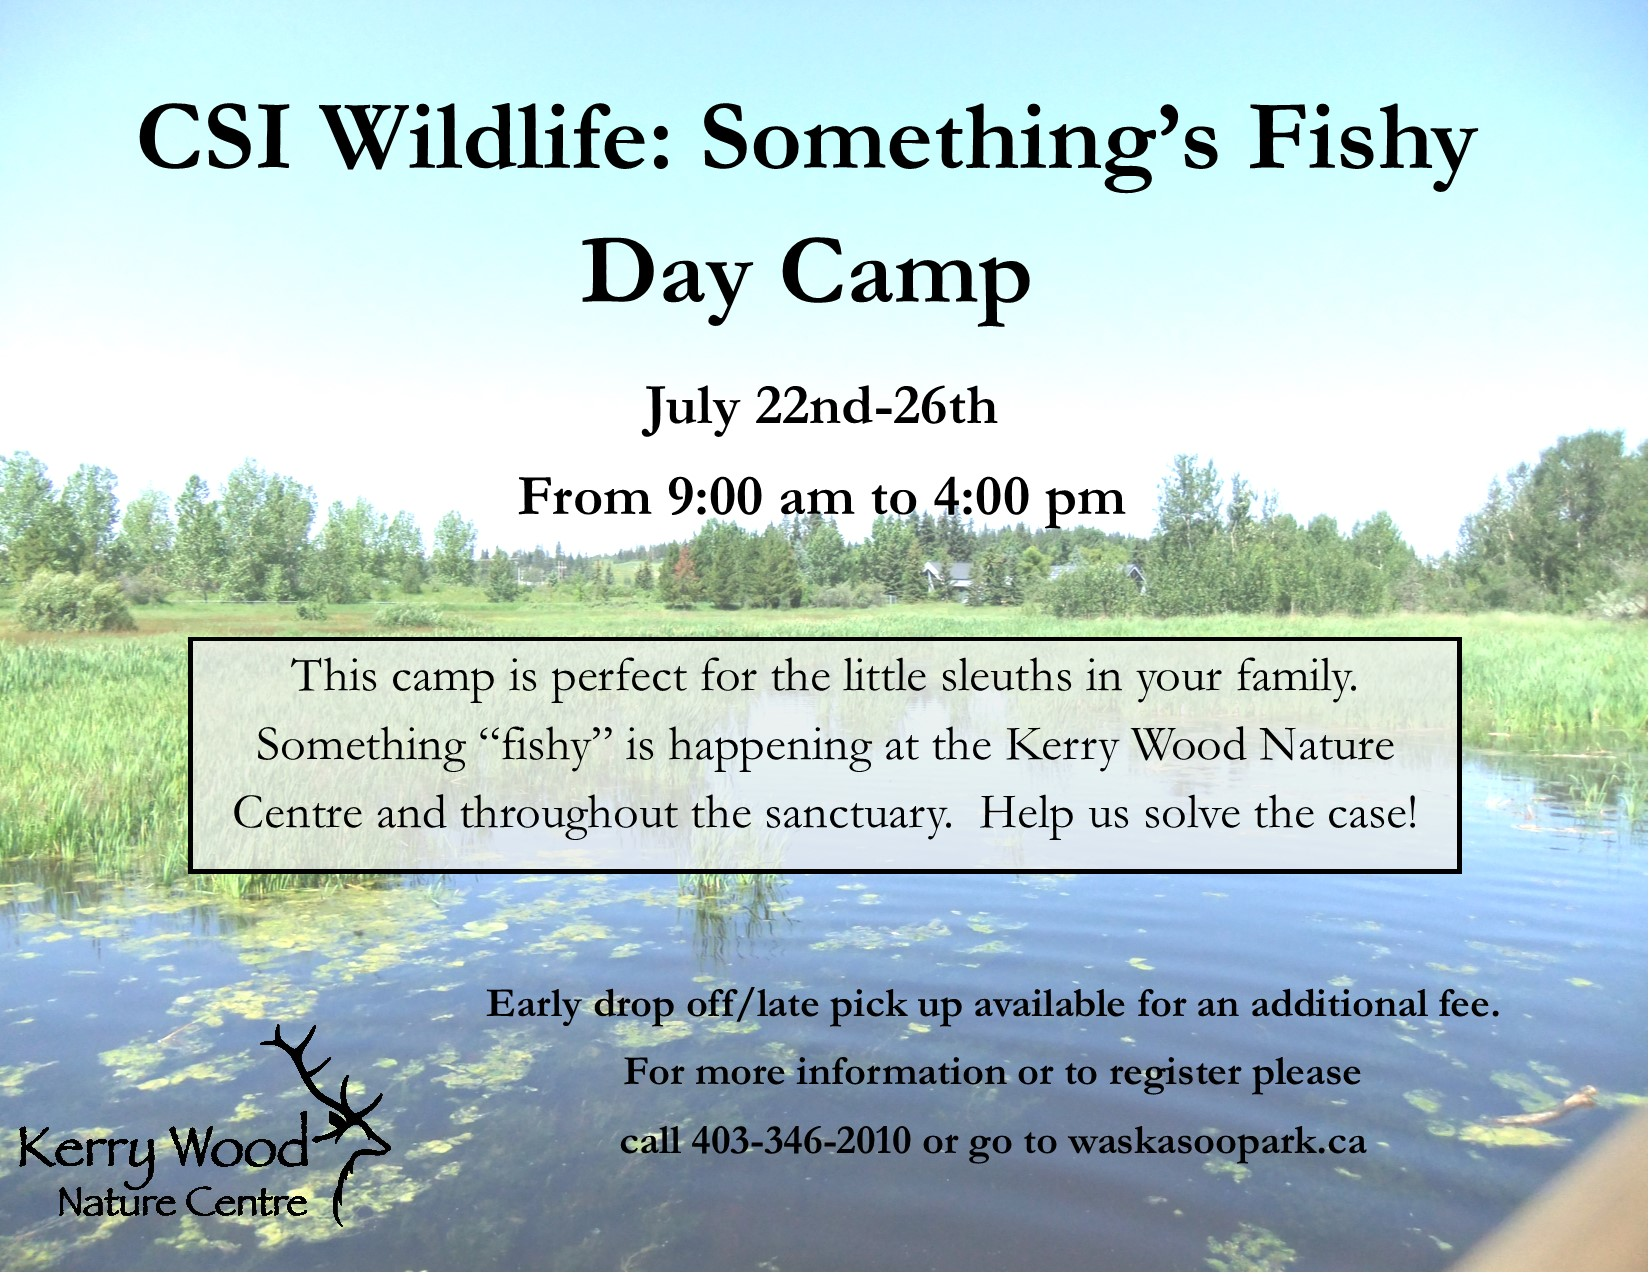 CSI Wildlife - Something's Fishy Day Camp